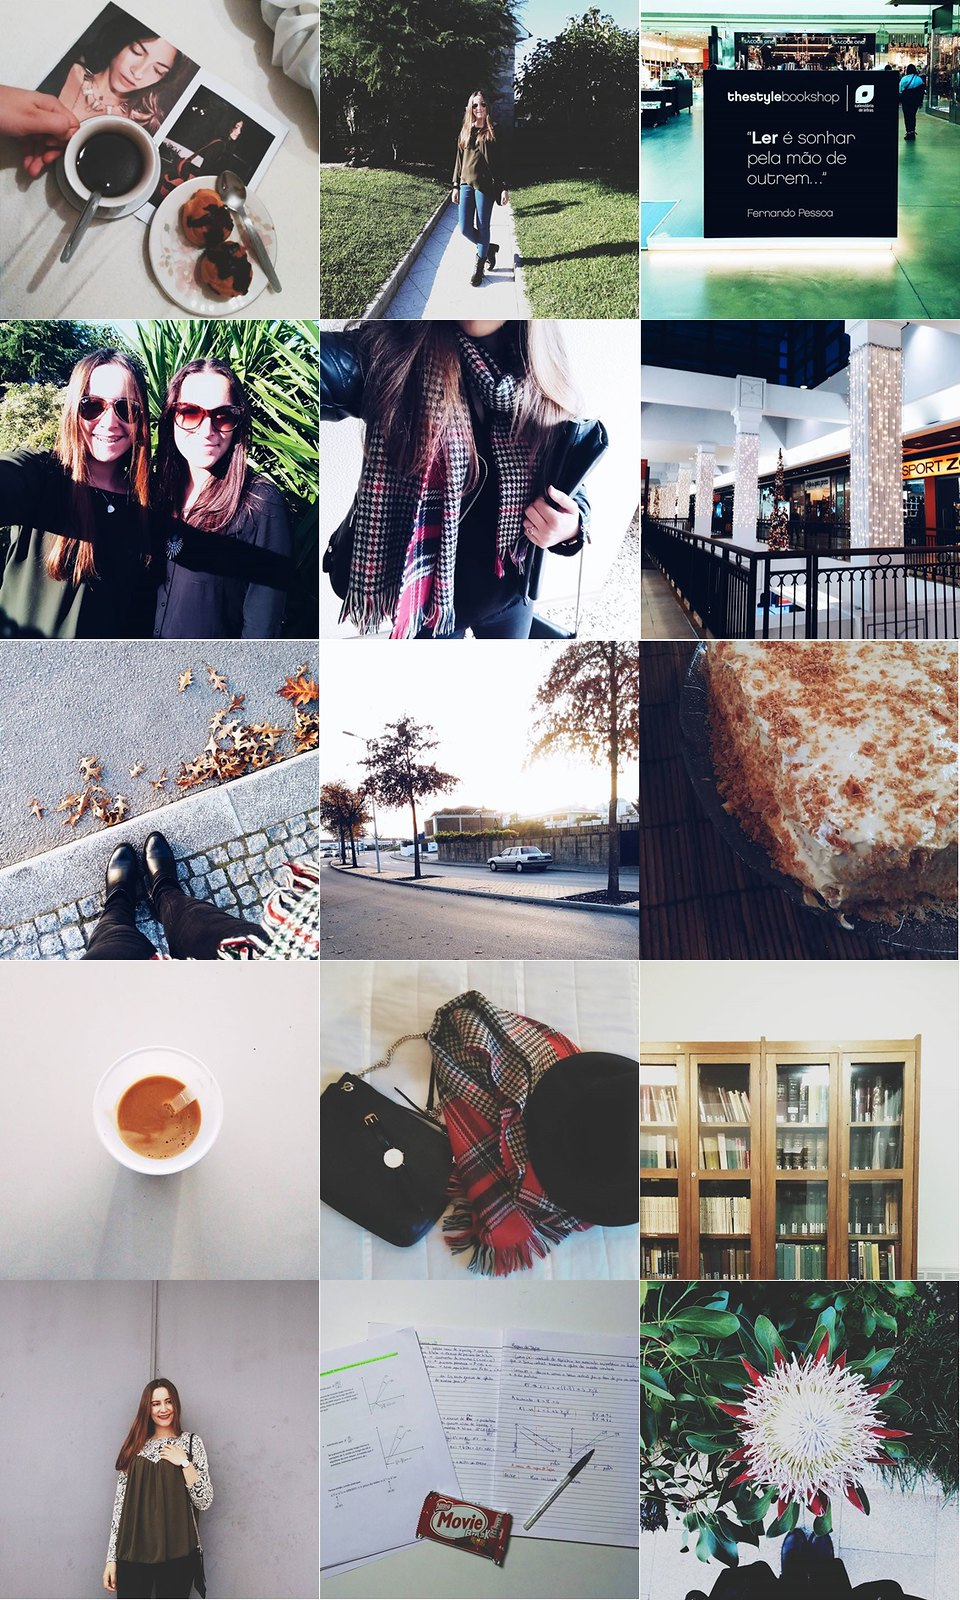 #38 My days through Instagram